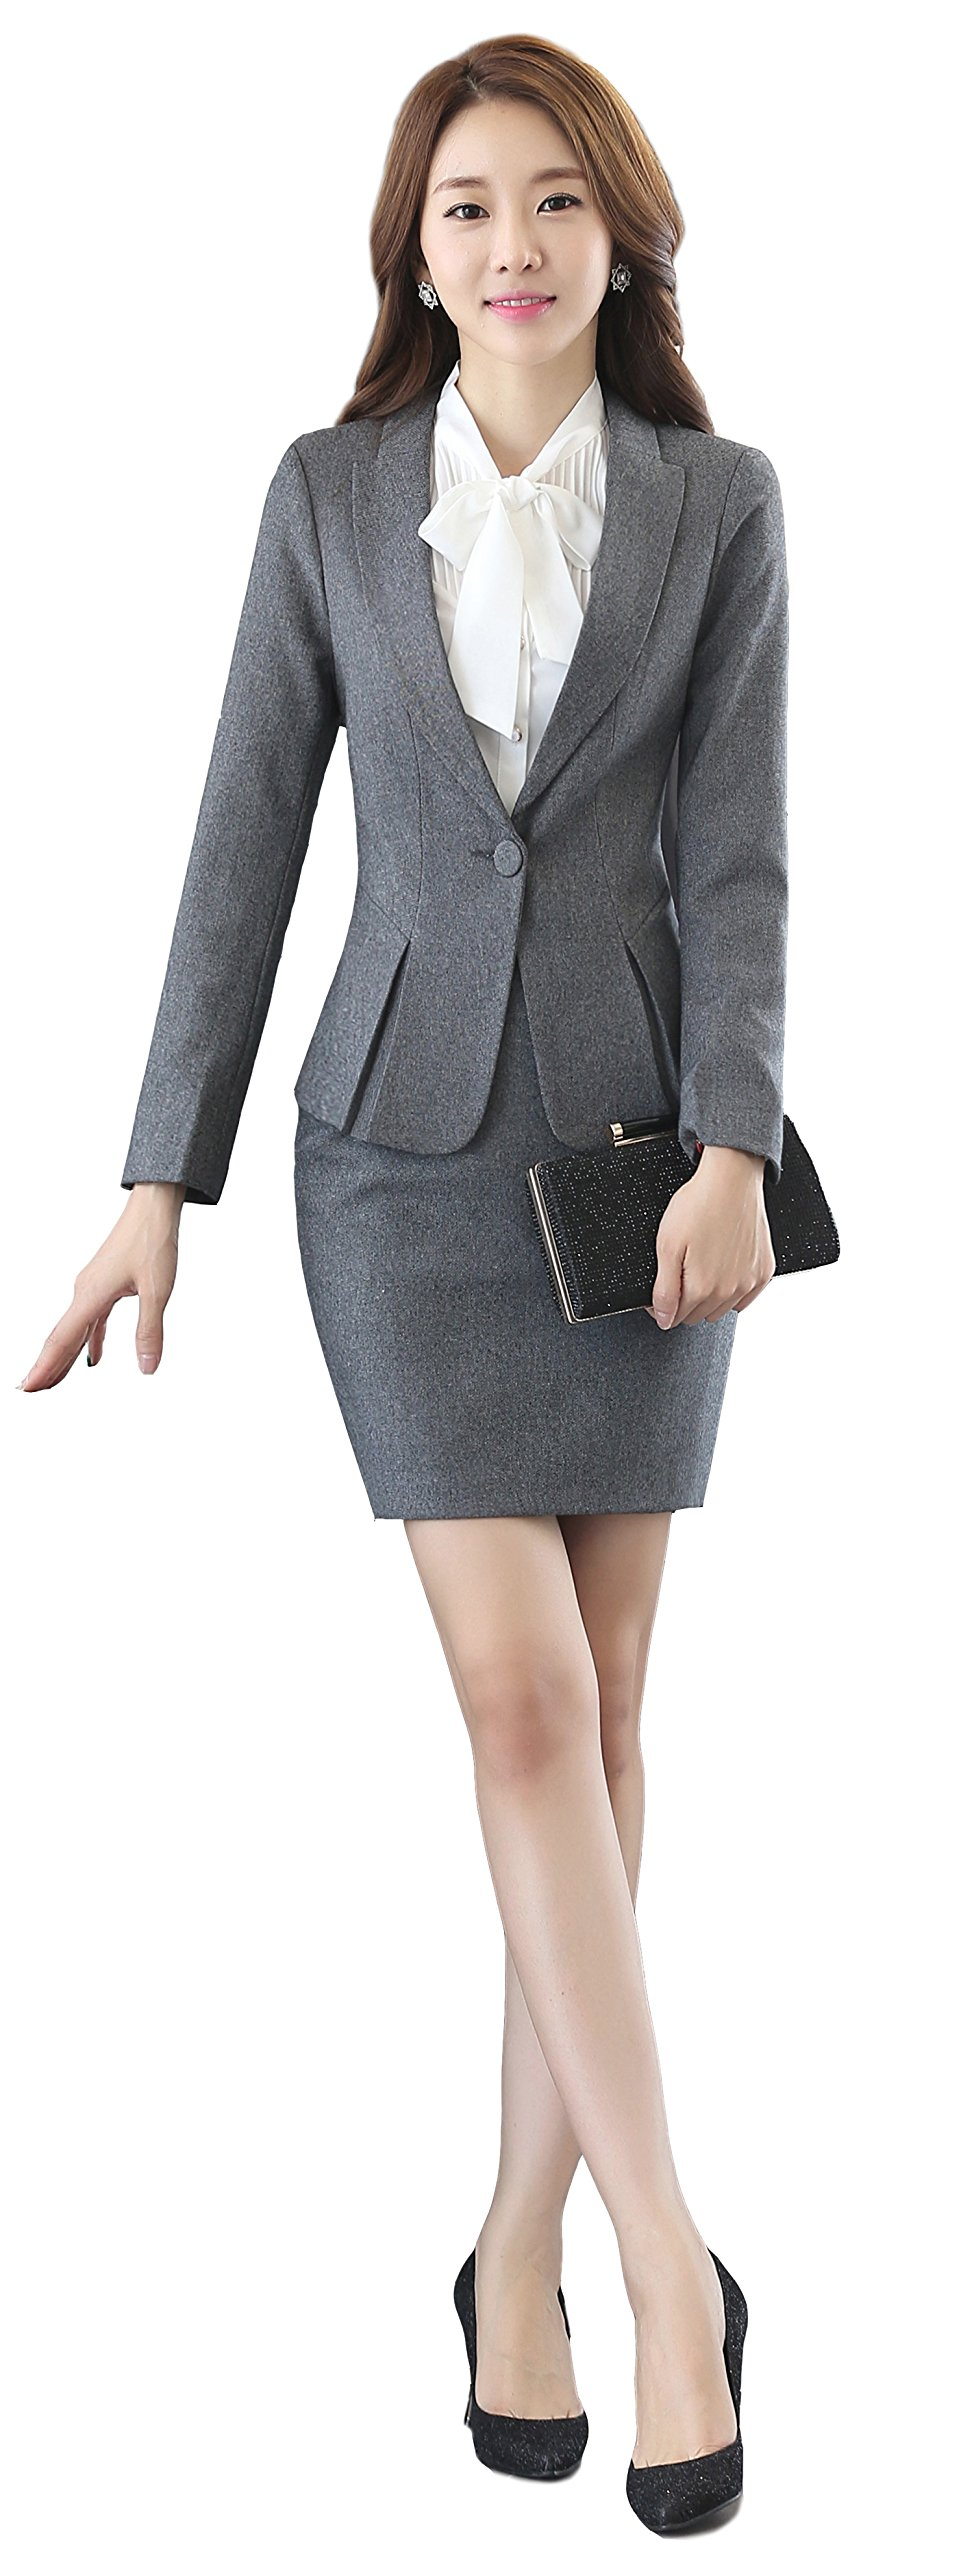 uruoi New Year Gift Women's Two Piece Office Lady Blazer Business Suit Set Skirt Gray XL